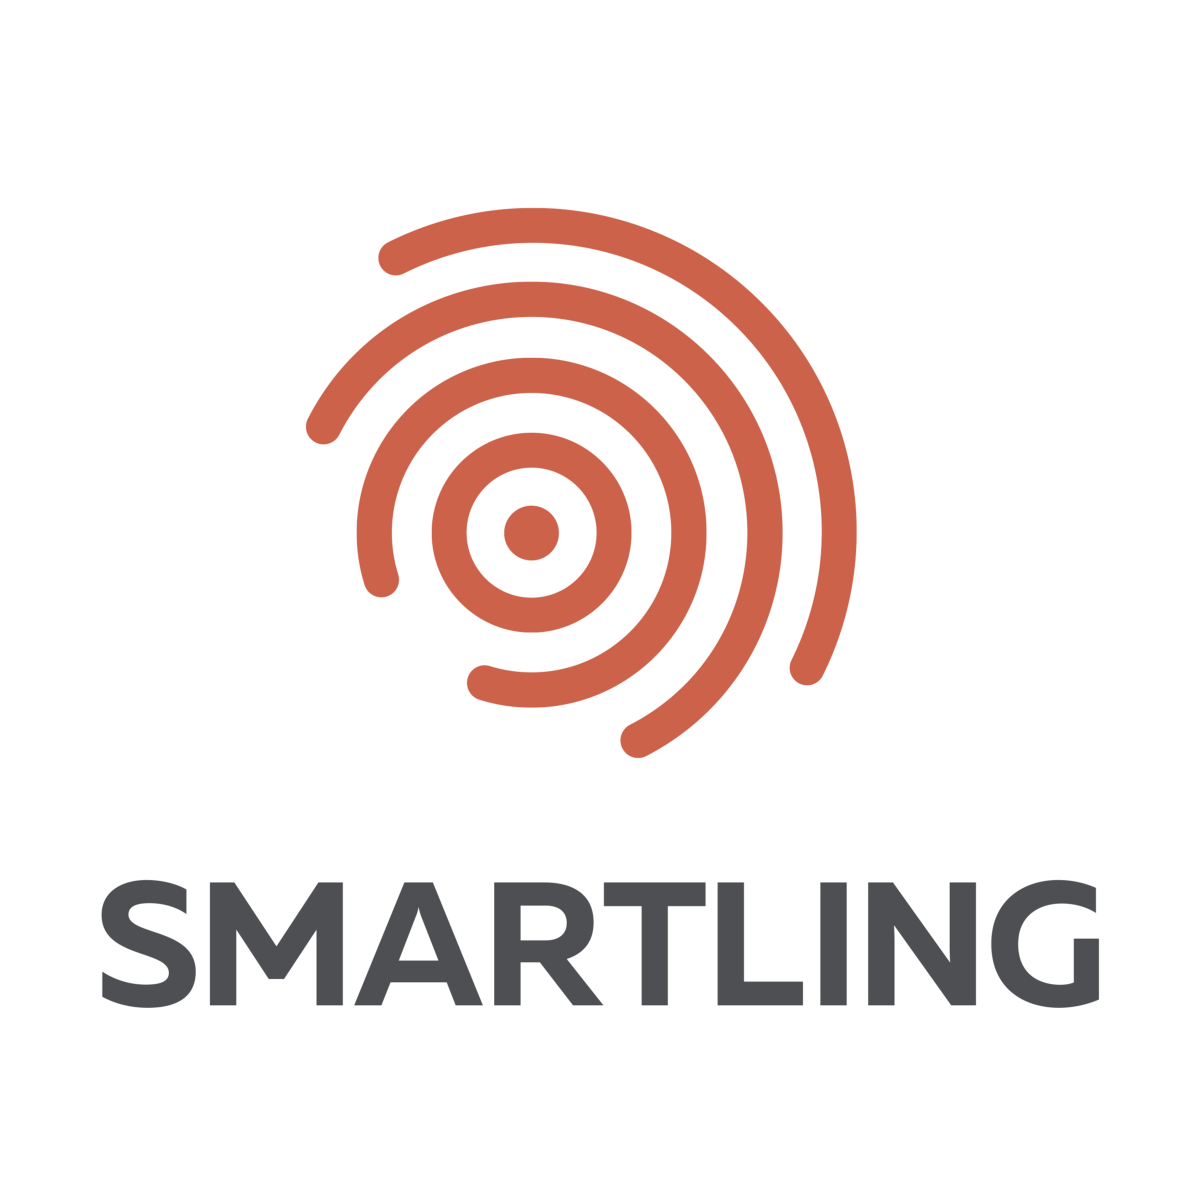 Global Ready Conference London – Smartling